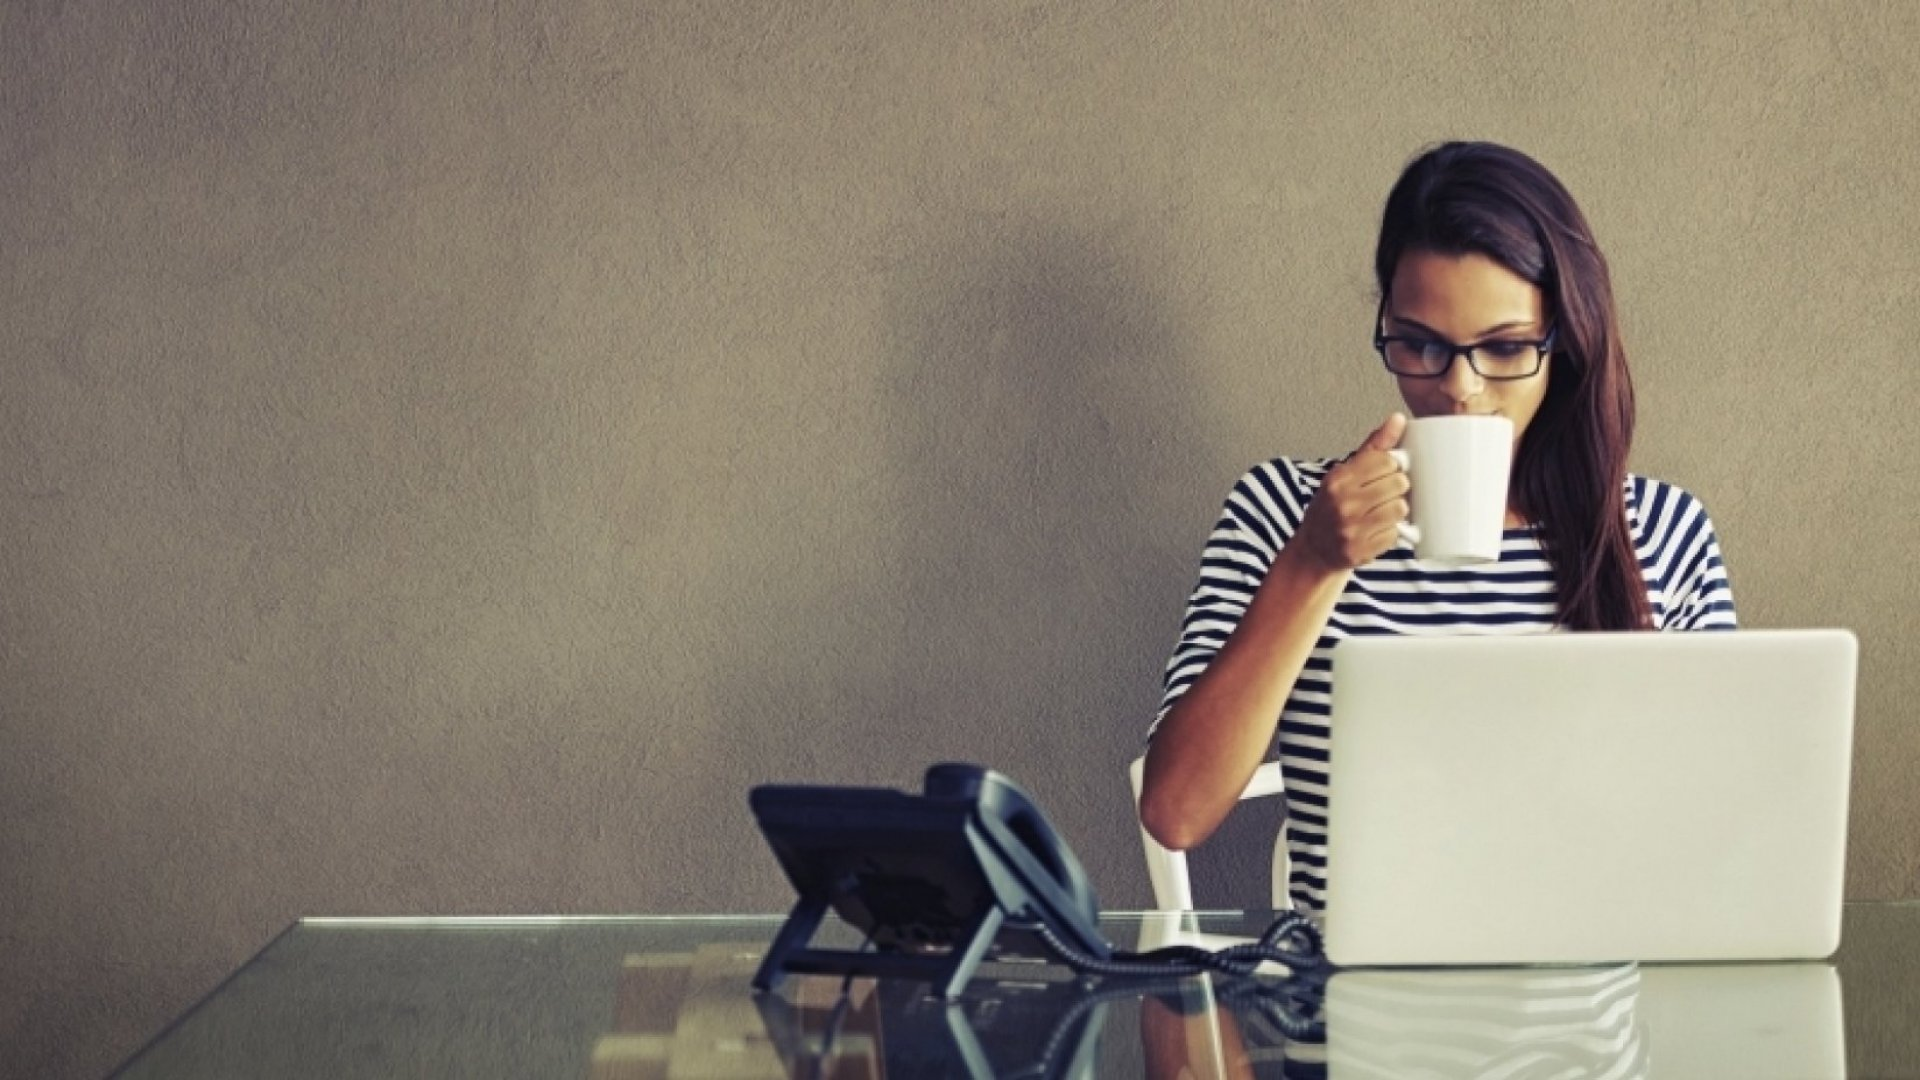 7 Ways Productive People Stay Focused